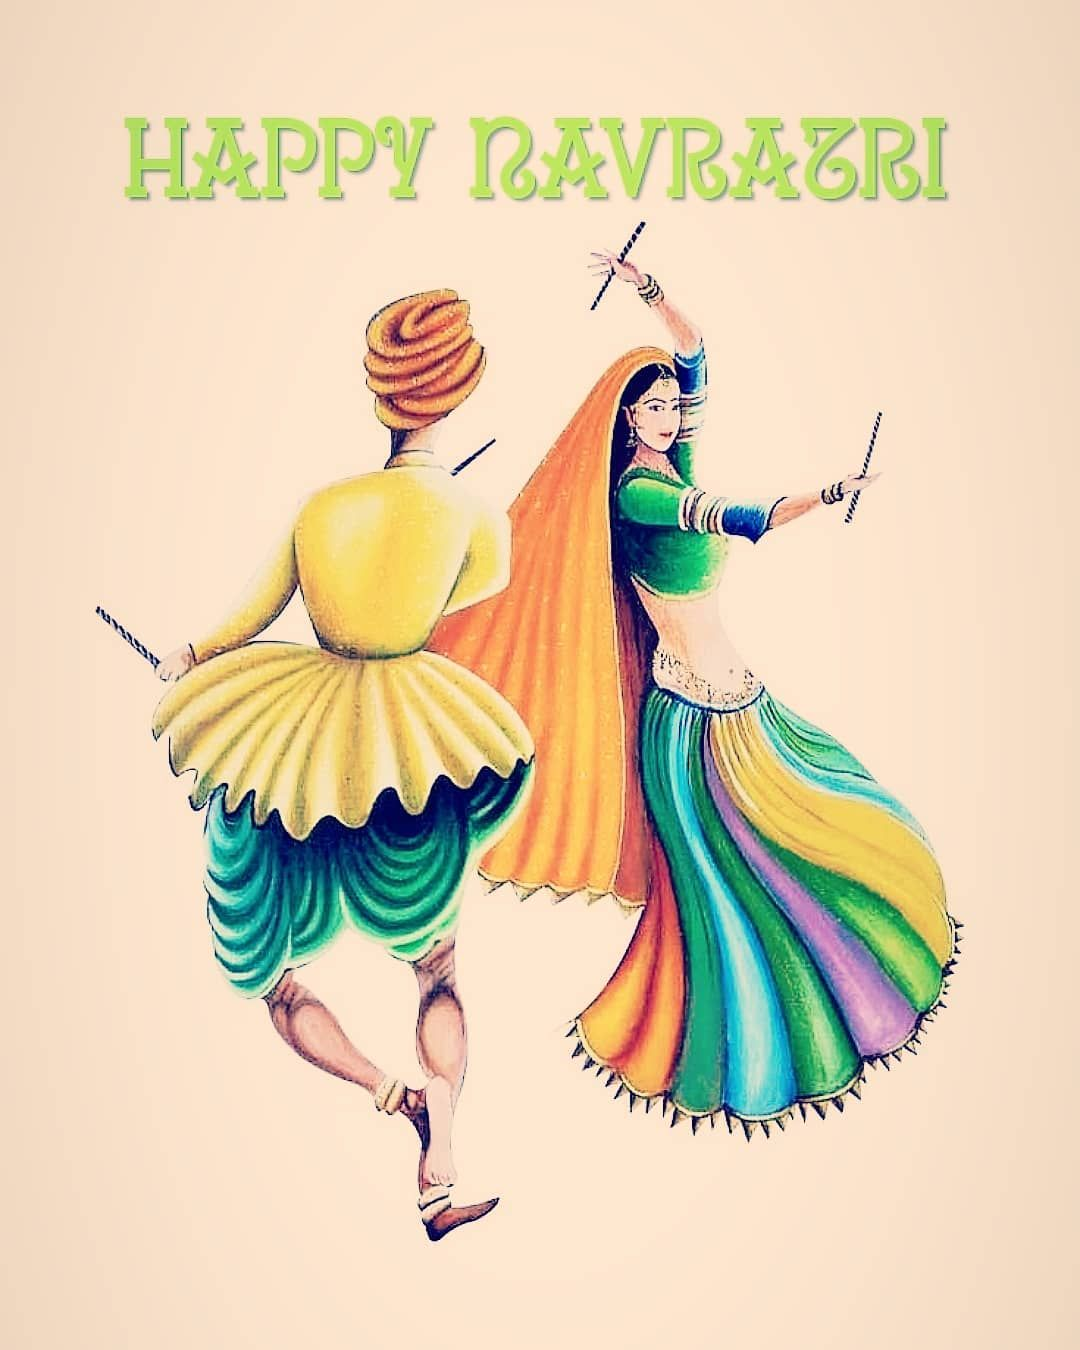 Hey Guys!! Enjoy the Festive Sunday✌️ May the brightness of Navratri fill our days with delight and happiness! May all good things happen to us this Navratri! Wishing everyone a Happy Navratri!✨